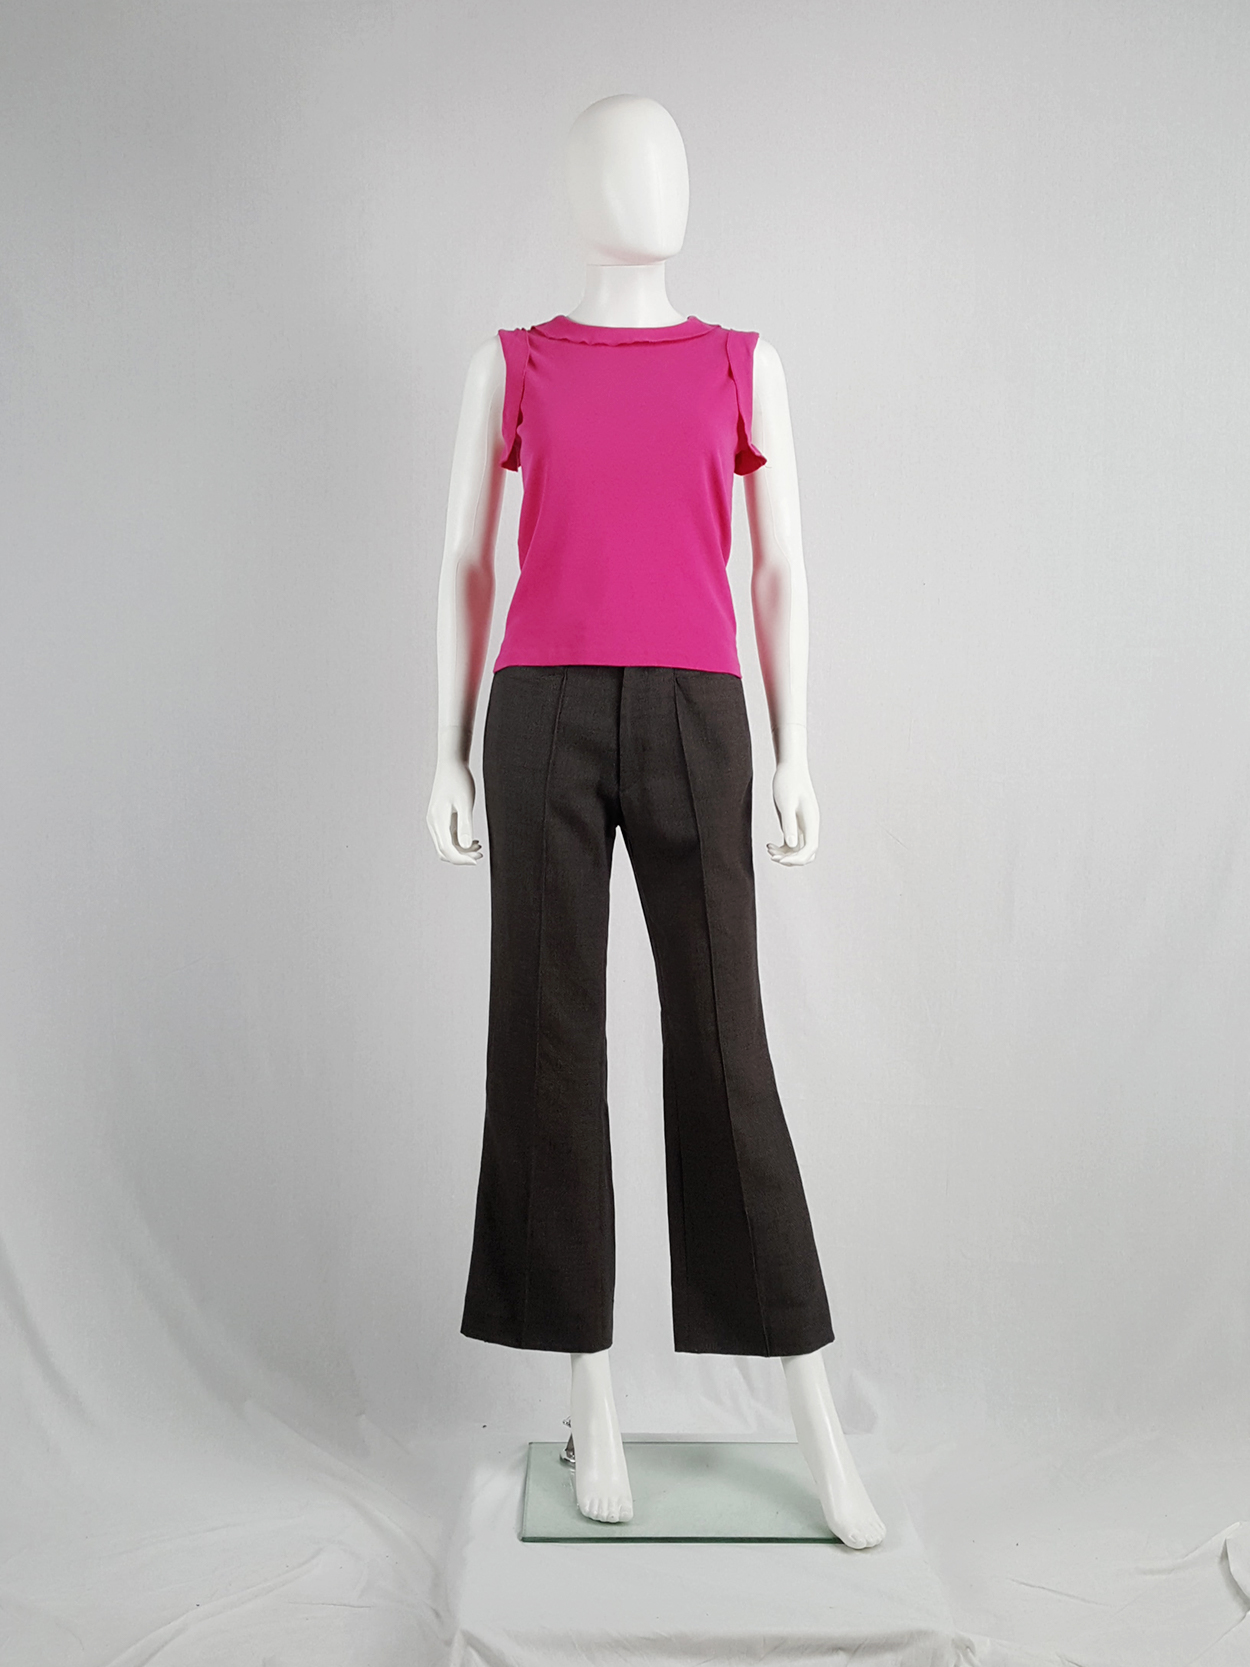 638c3622458 Maison Martin Margiela pink top with movable inside out seams ...